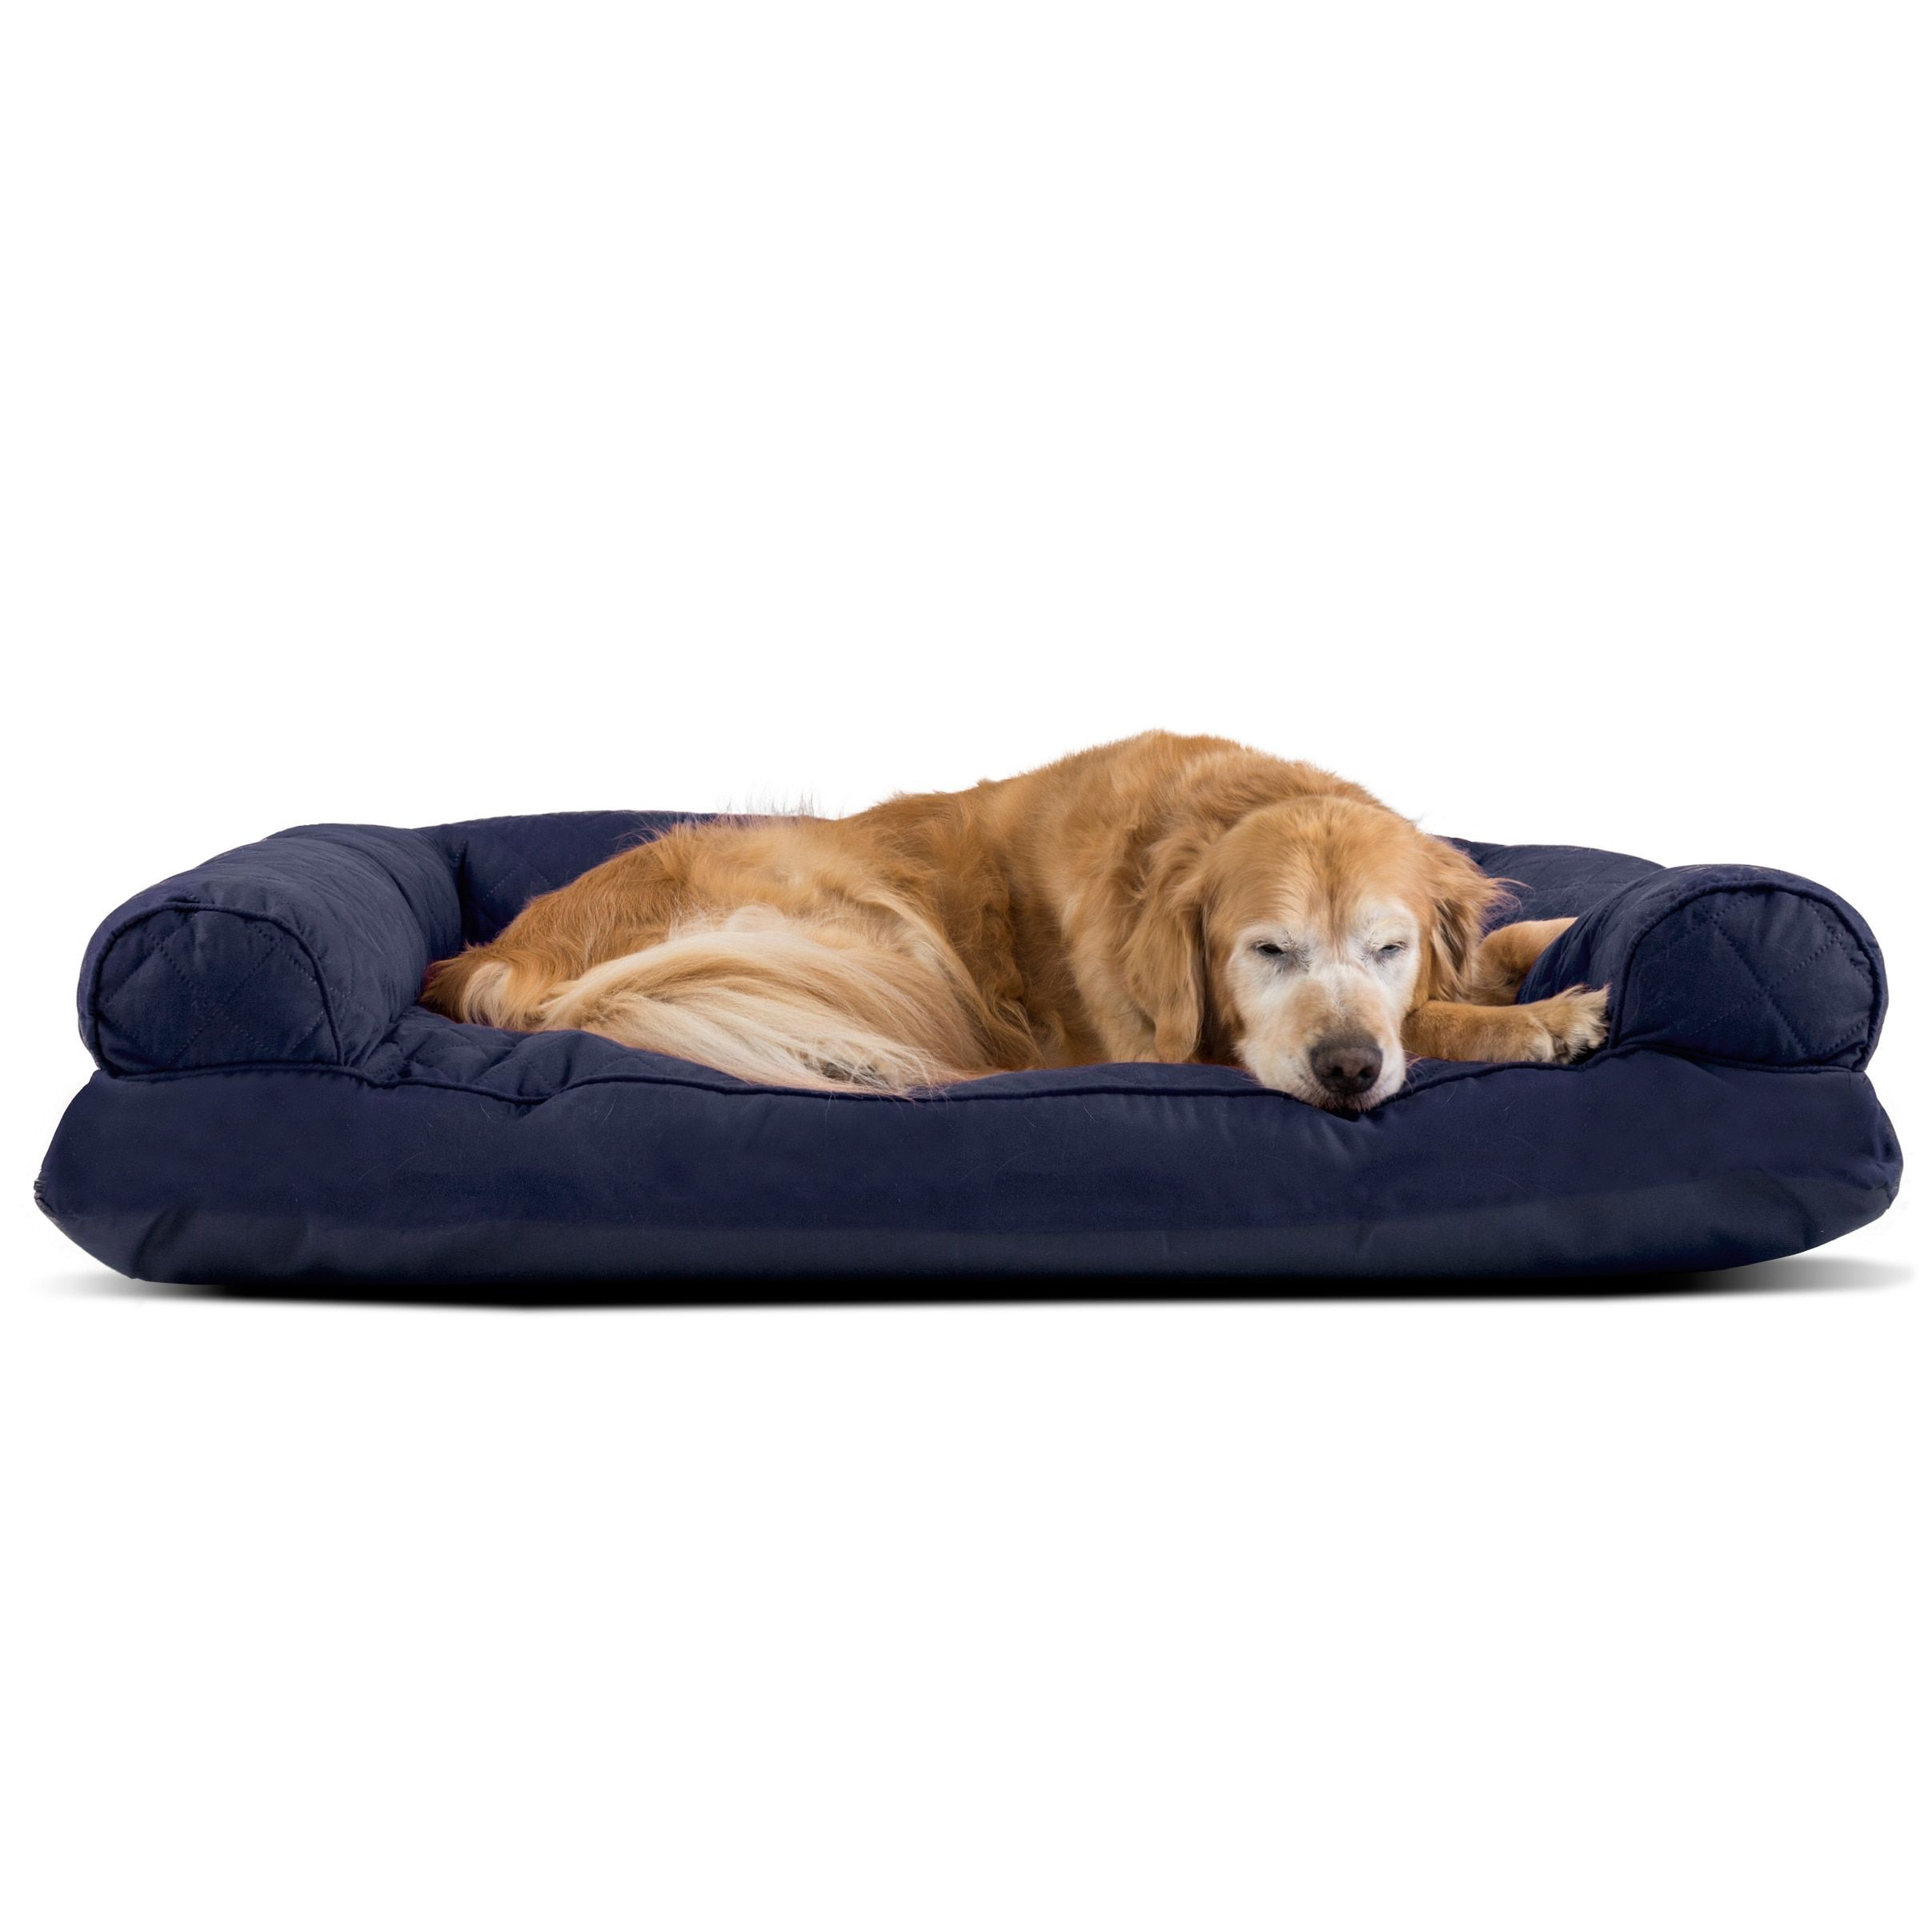 Overstock Com Online Shopping Bedding Furniture Electronics Jewelry Clothing More Couch Pet Bed Dog Sofa Bed Dog Pet Beds